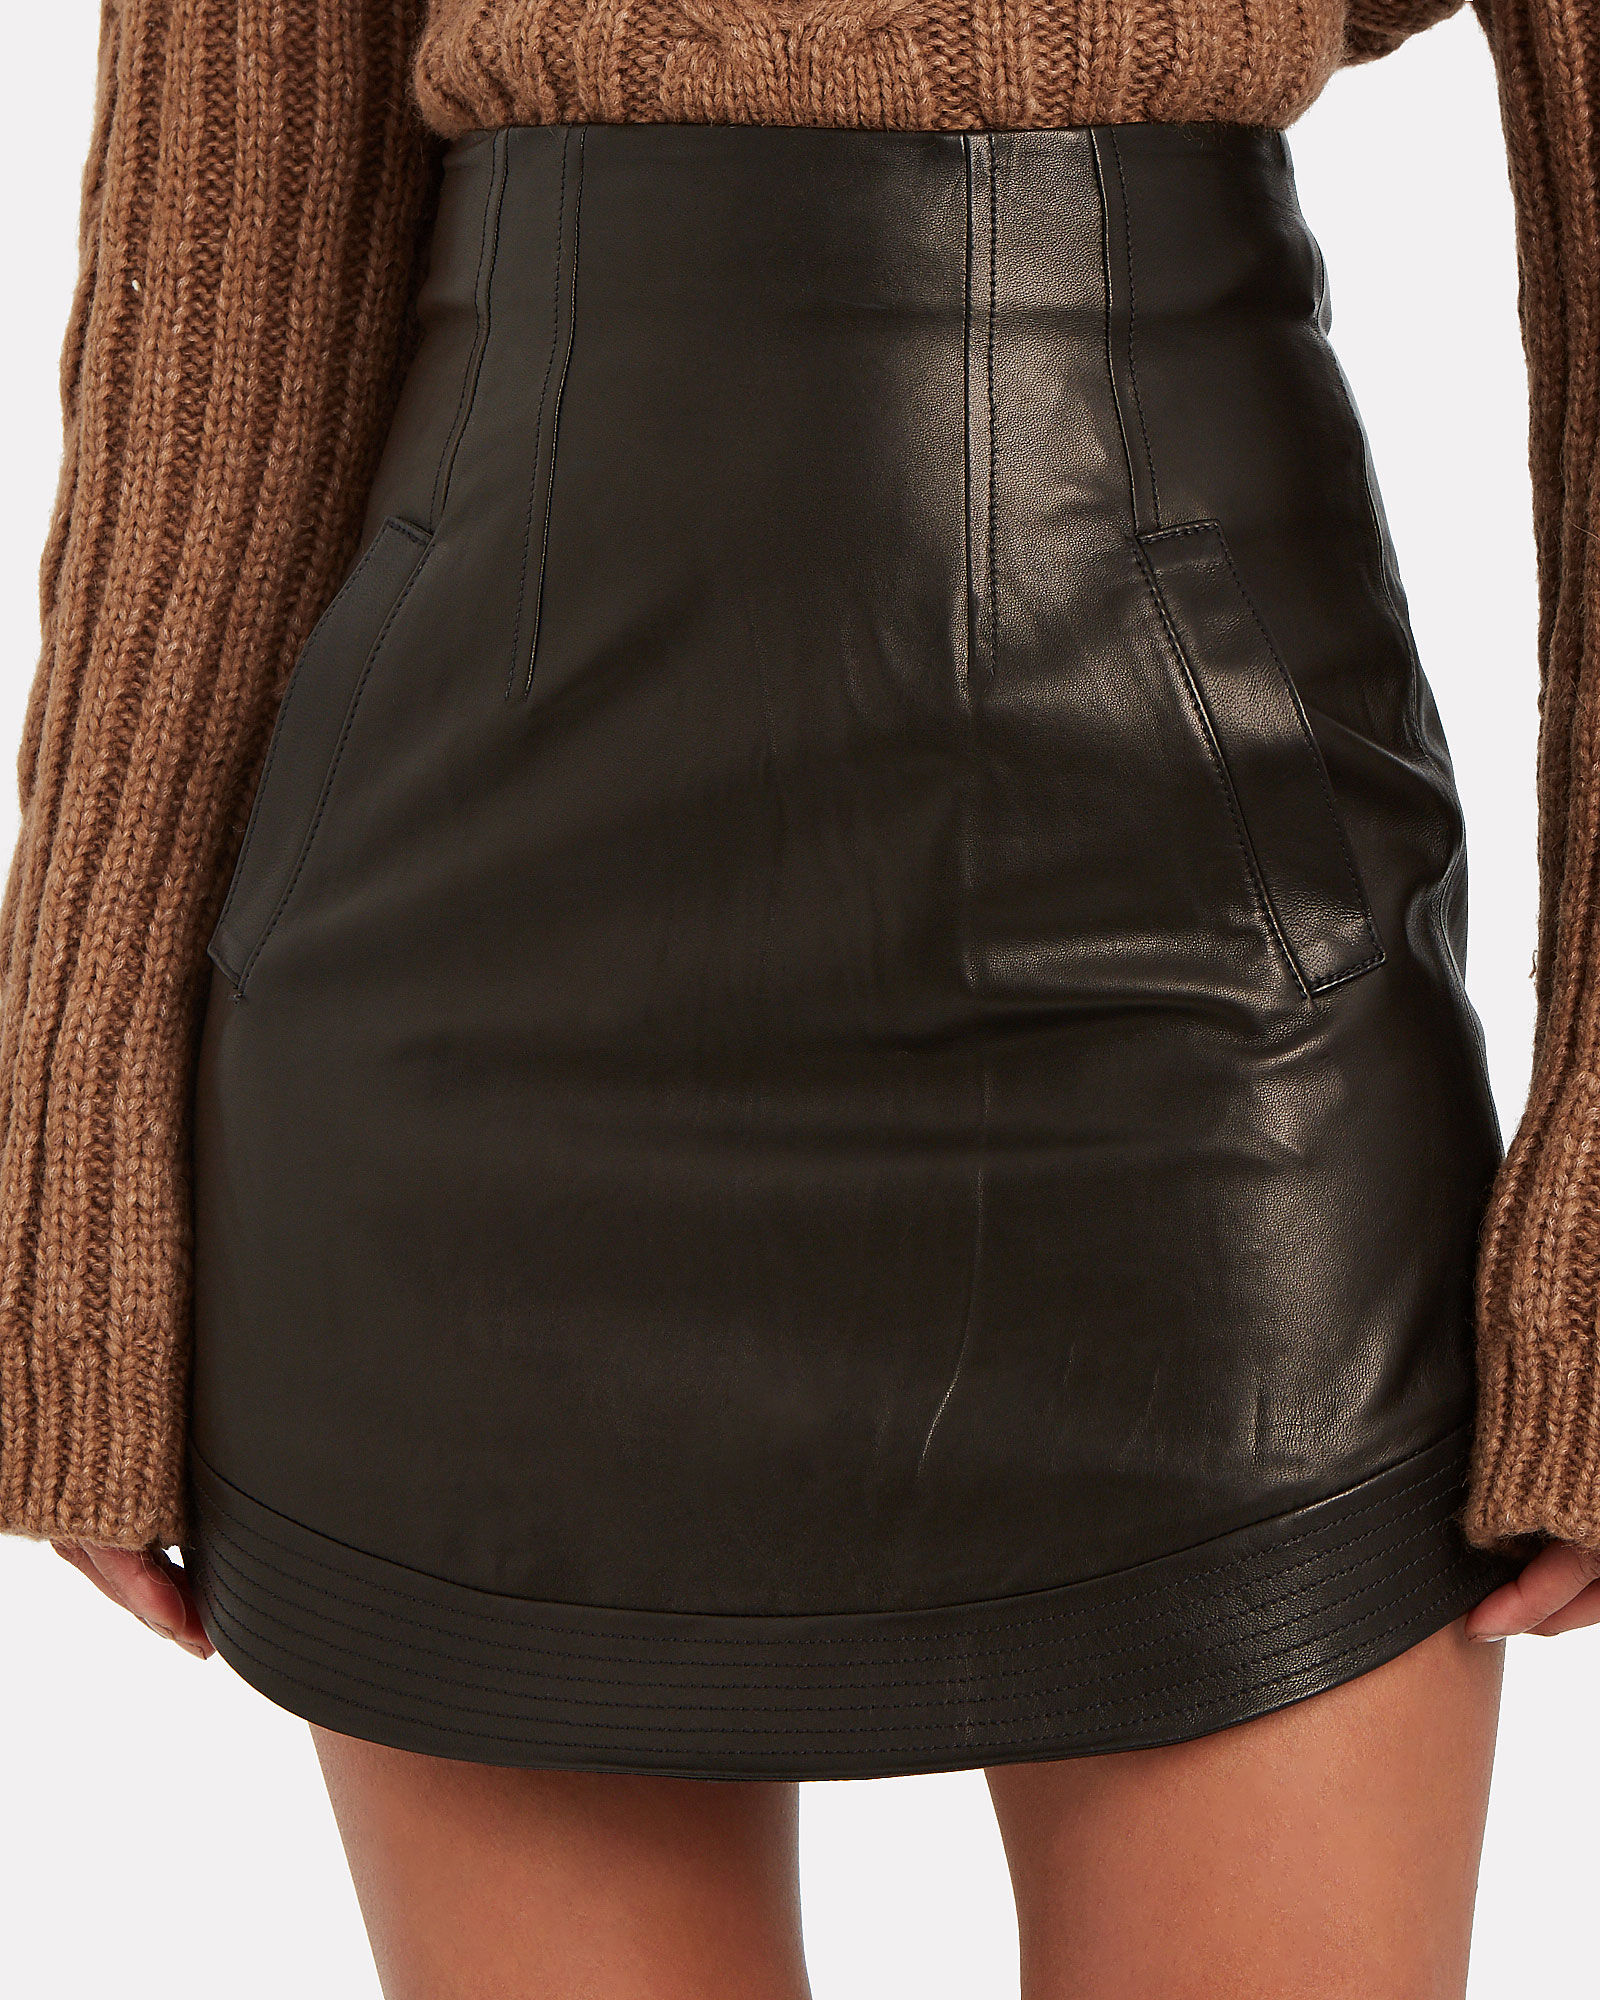 Reggie Leather Mini Skirt, BLACK, hi-res